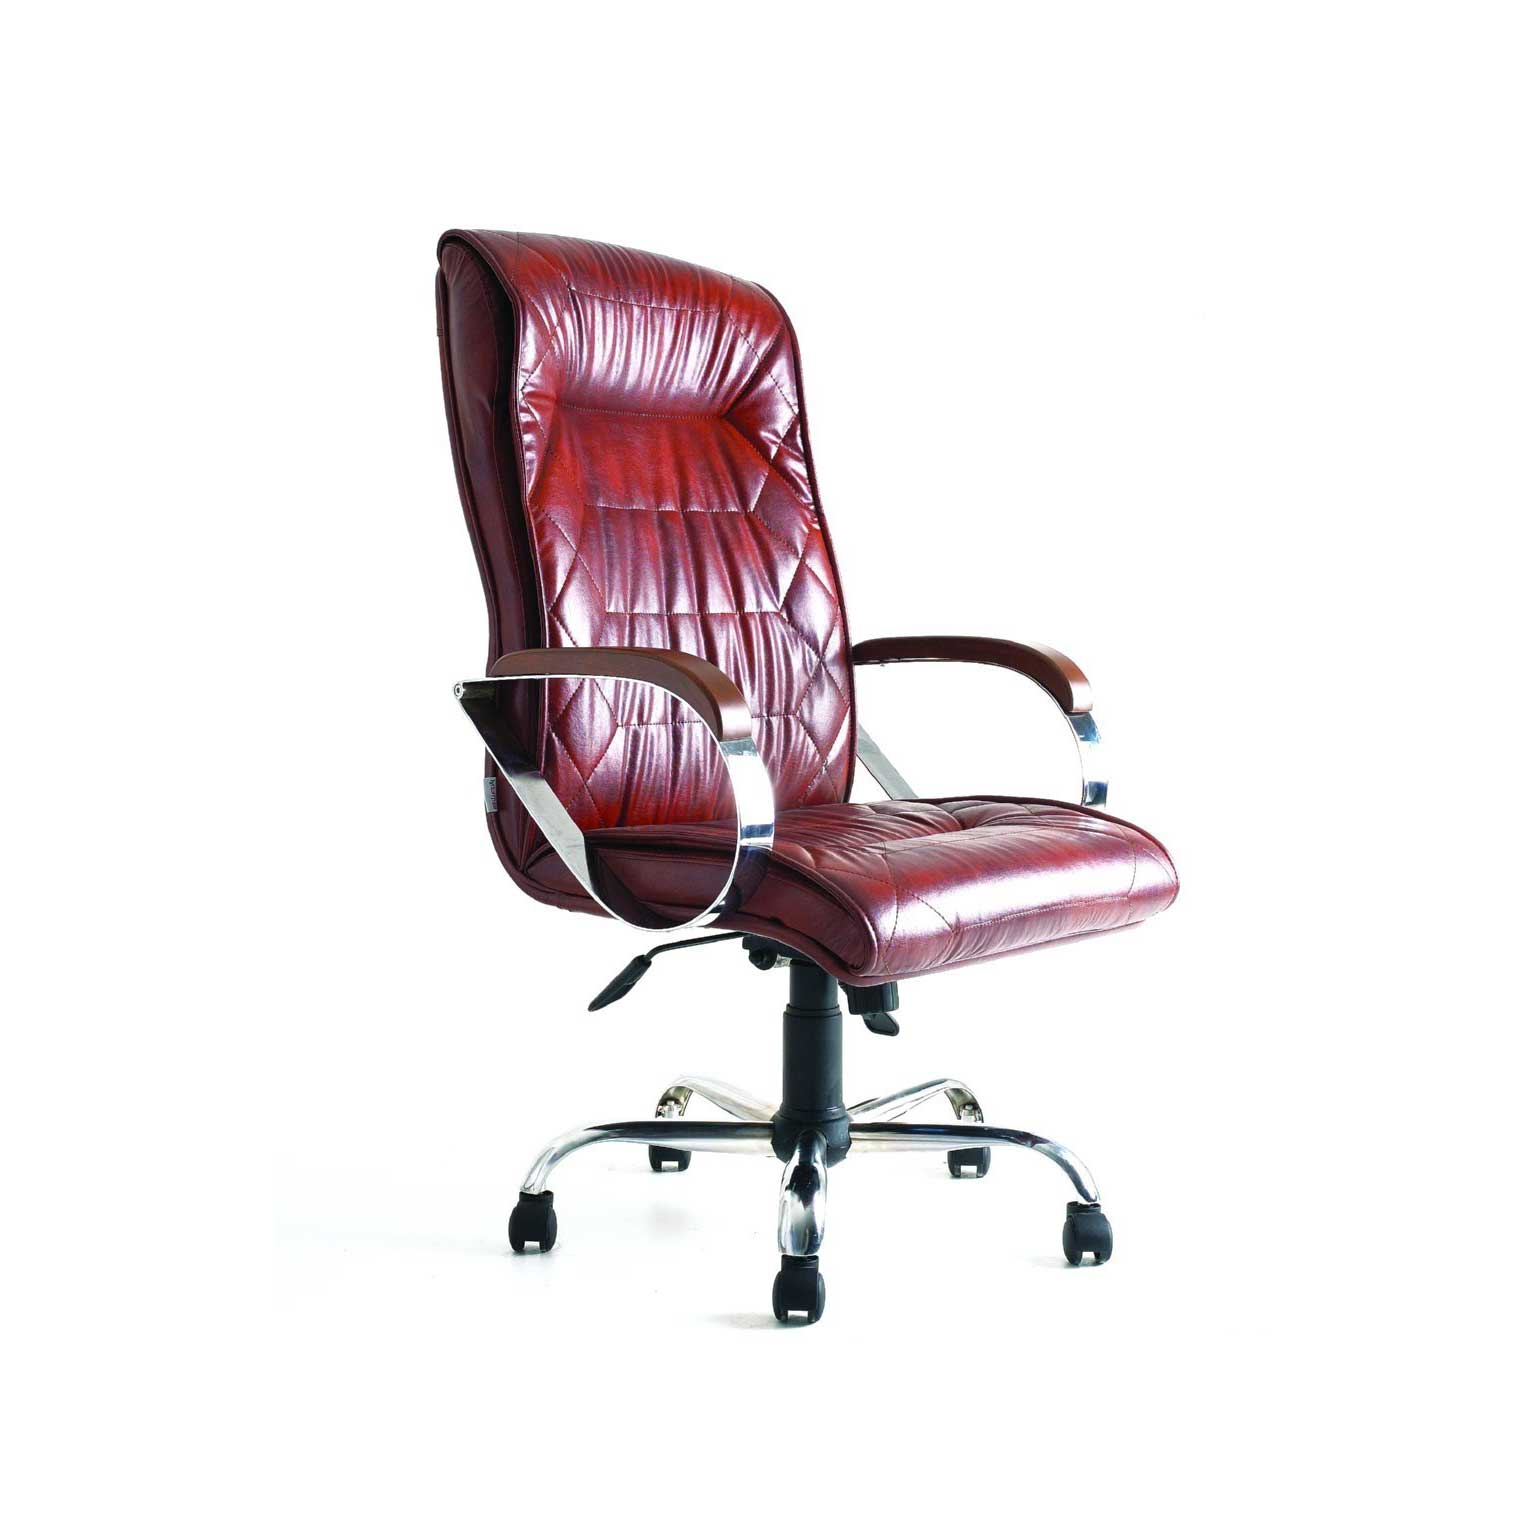 Stylish Red Executive Leather Chair